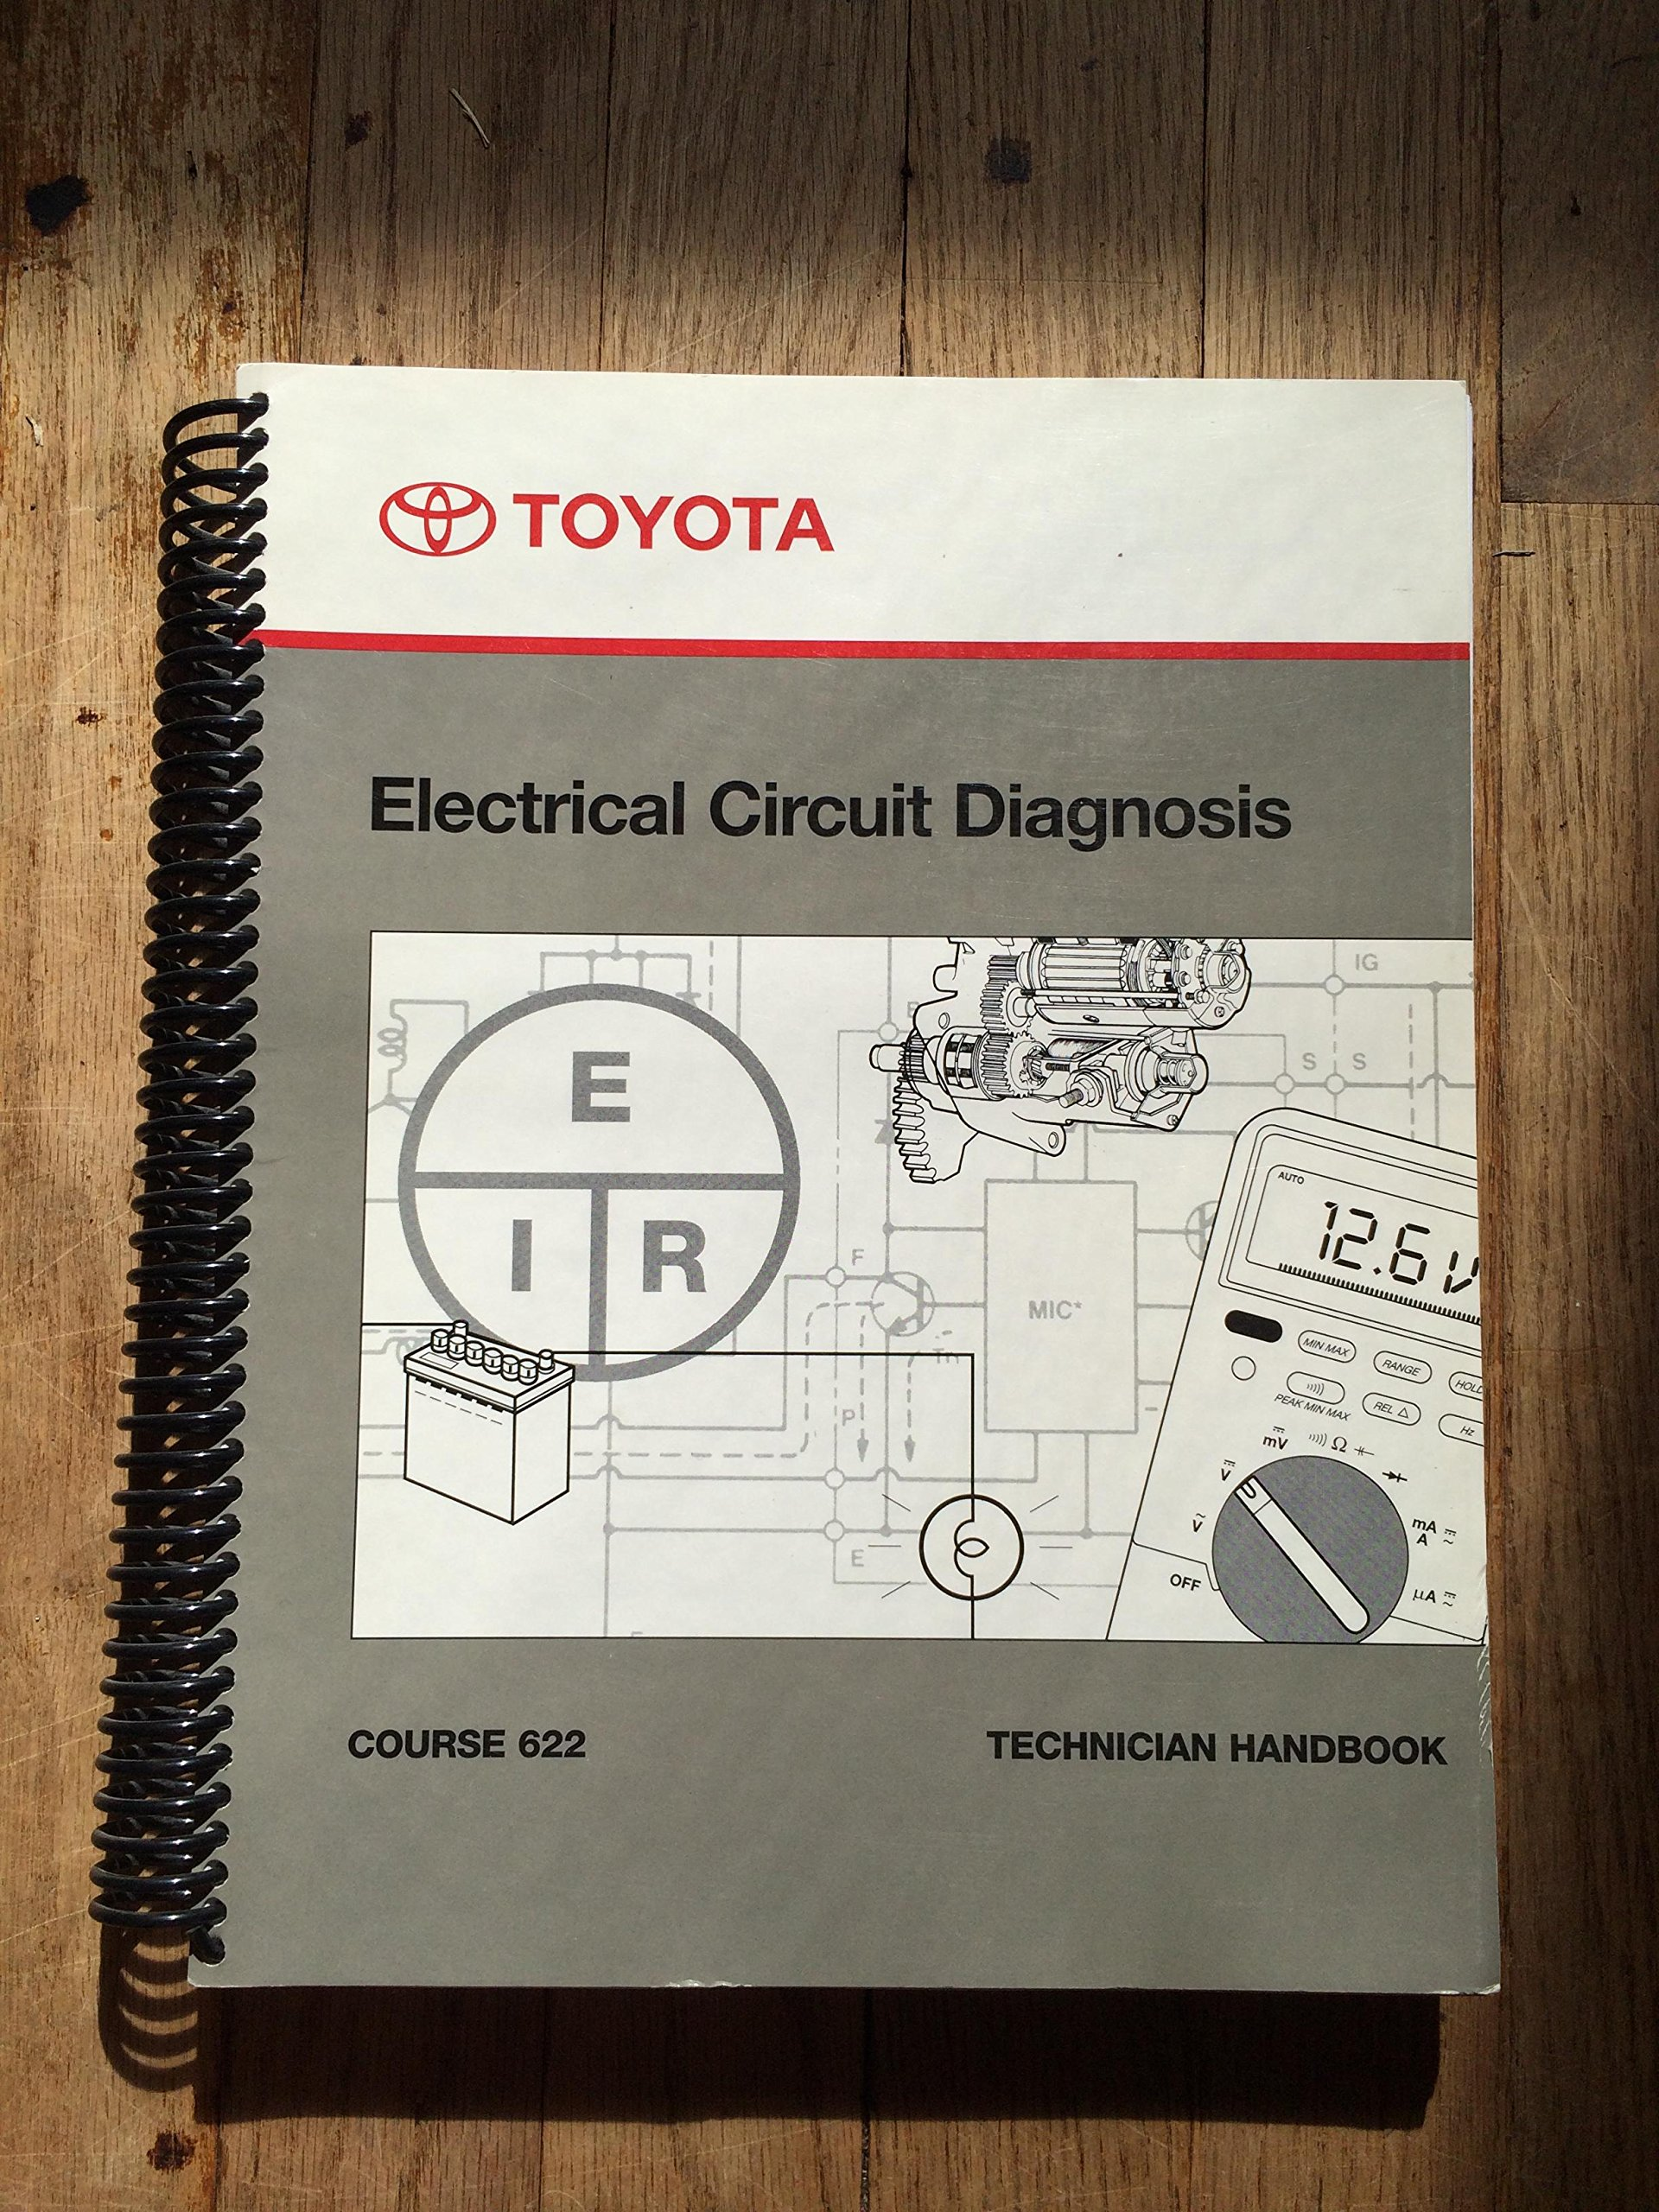 Awe Inspiring Toyota Electrical Circuit Diagnosis Technicians Handbook Course Wiring Digital Resources Aeocykbiperorg